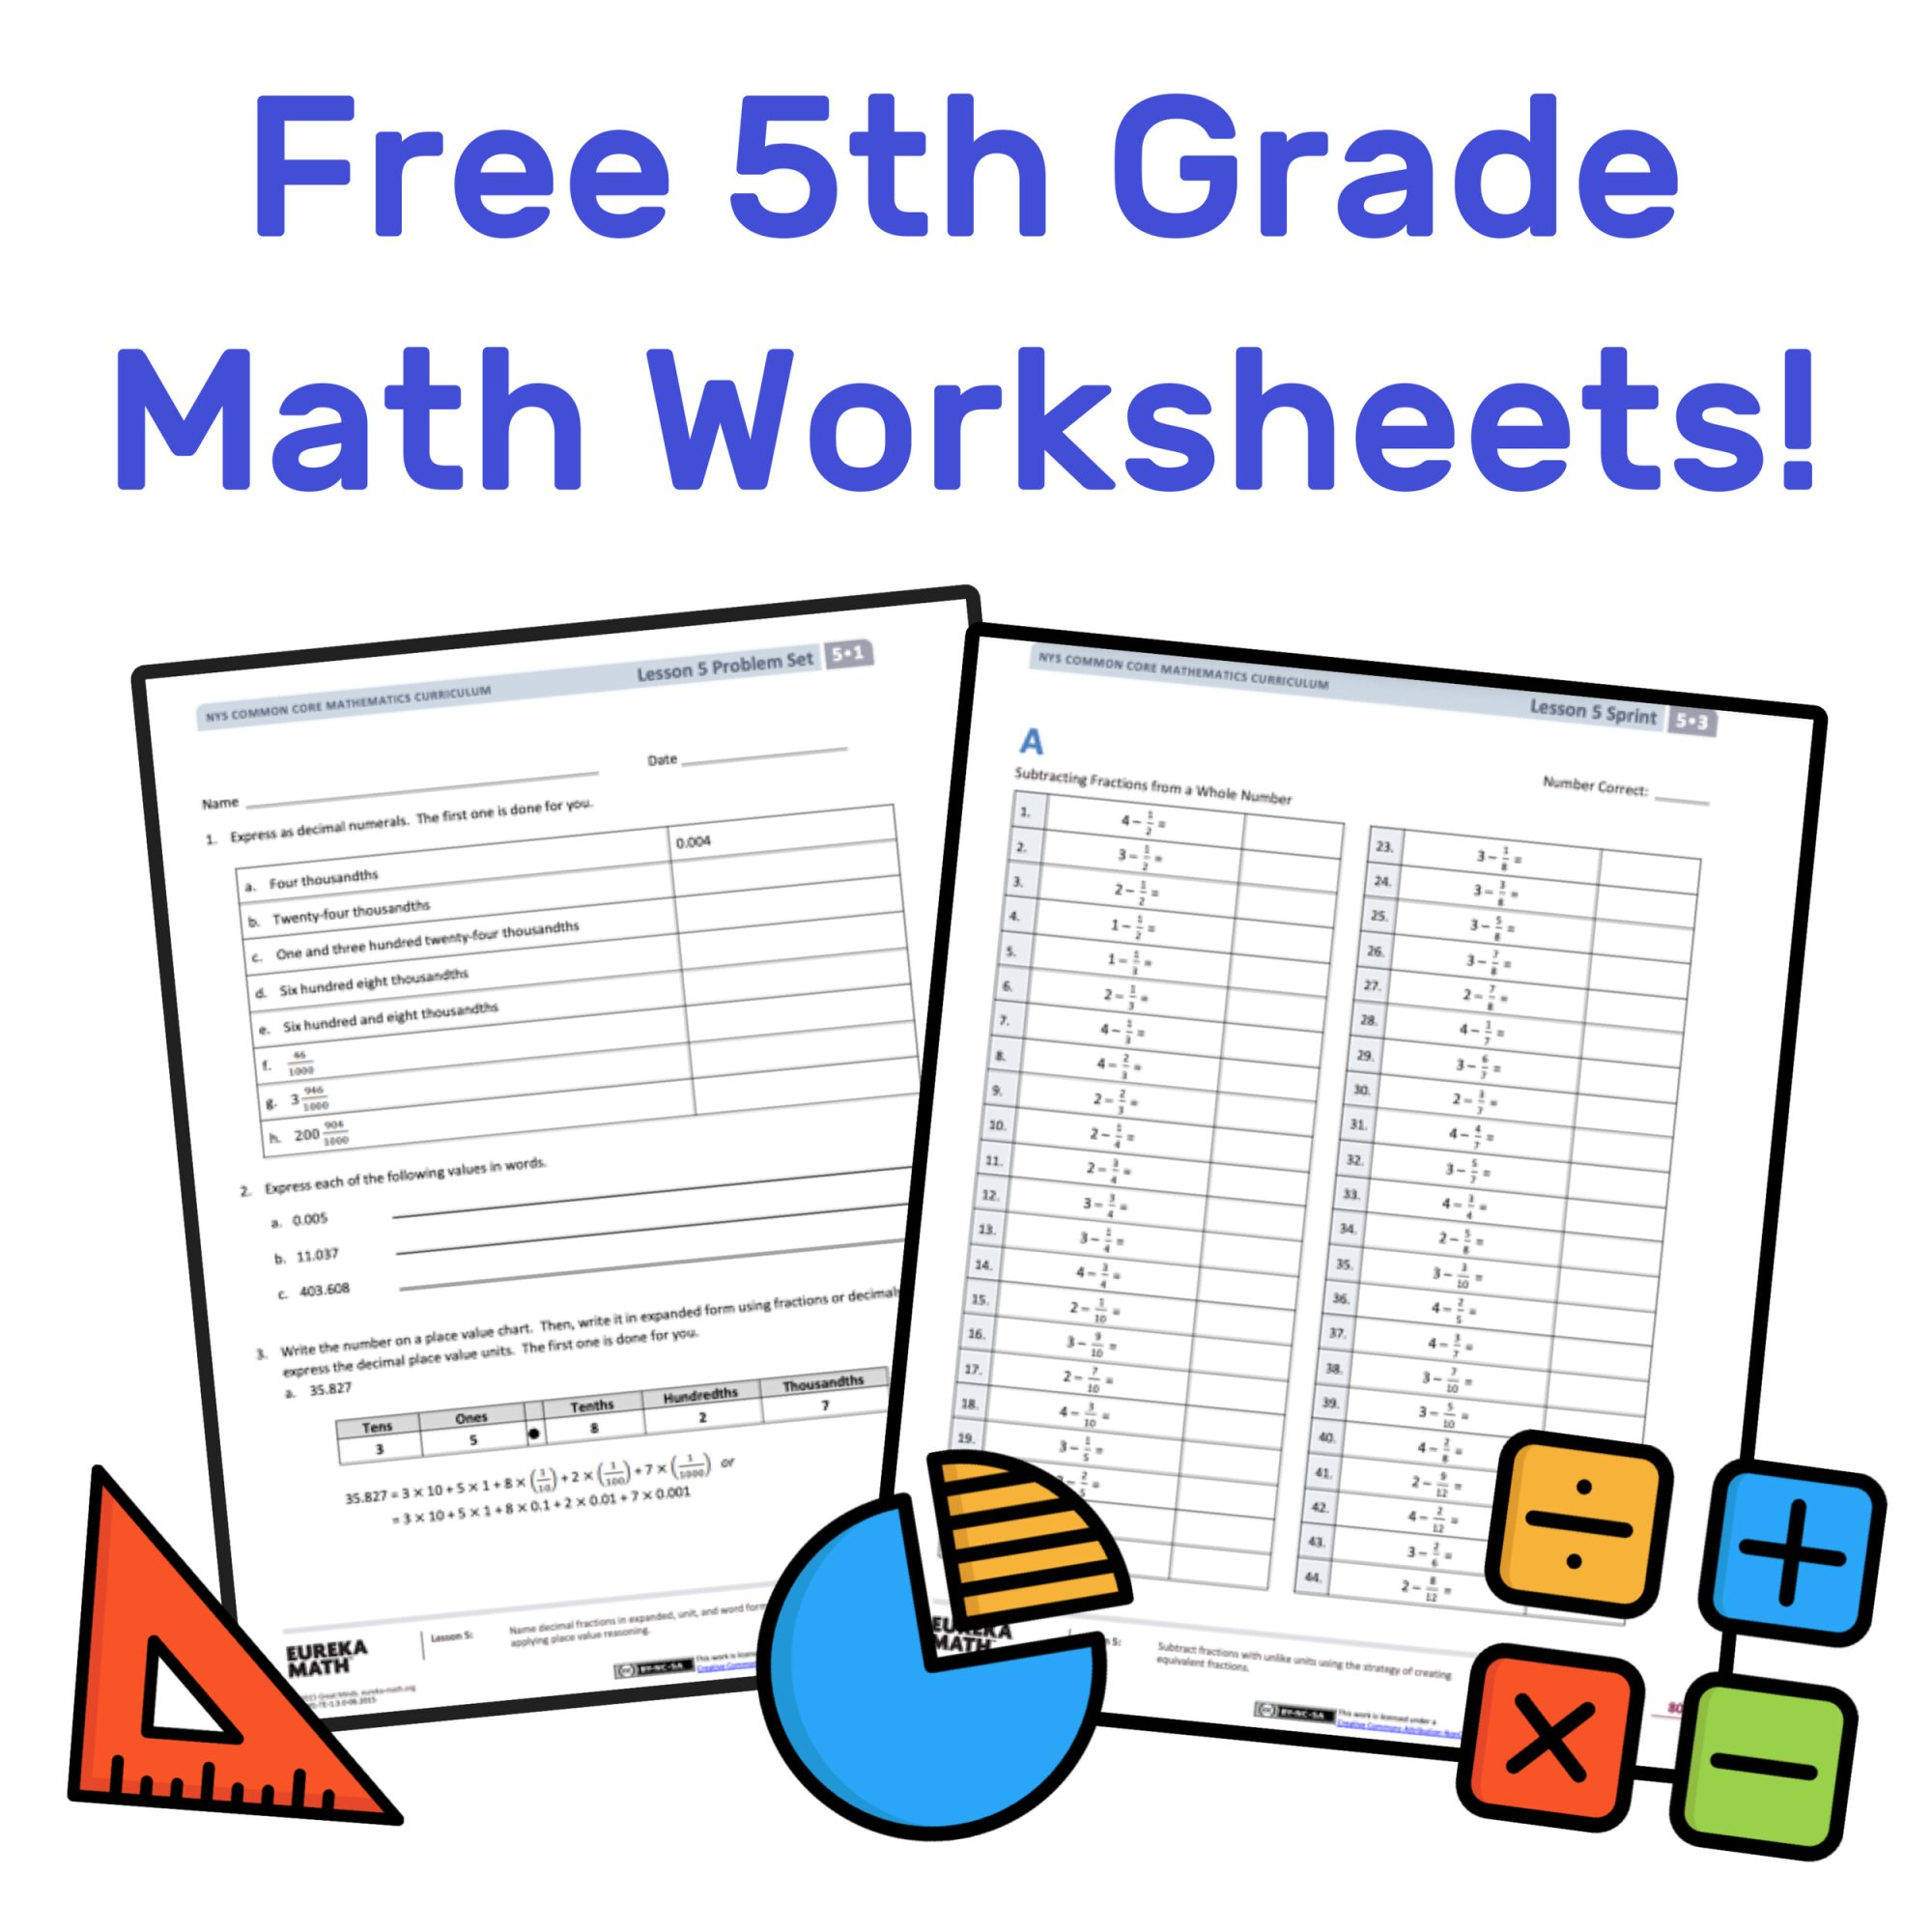 hight resolution of The Best Free 5th Grade Math Resources: Complete List! — Mashup Math